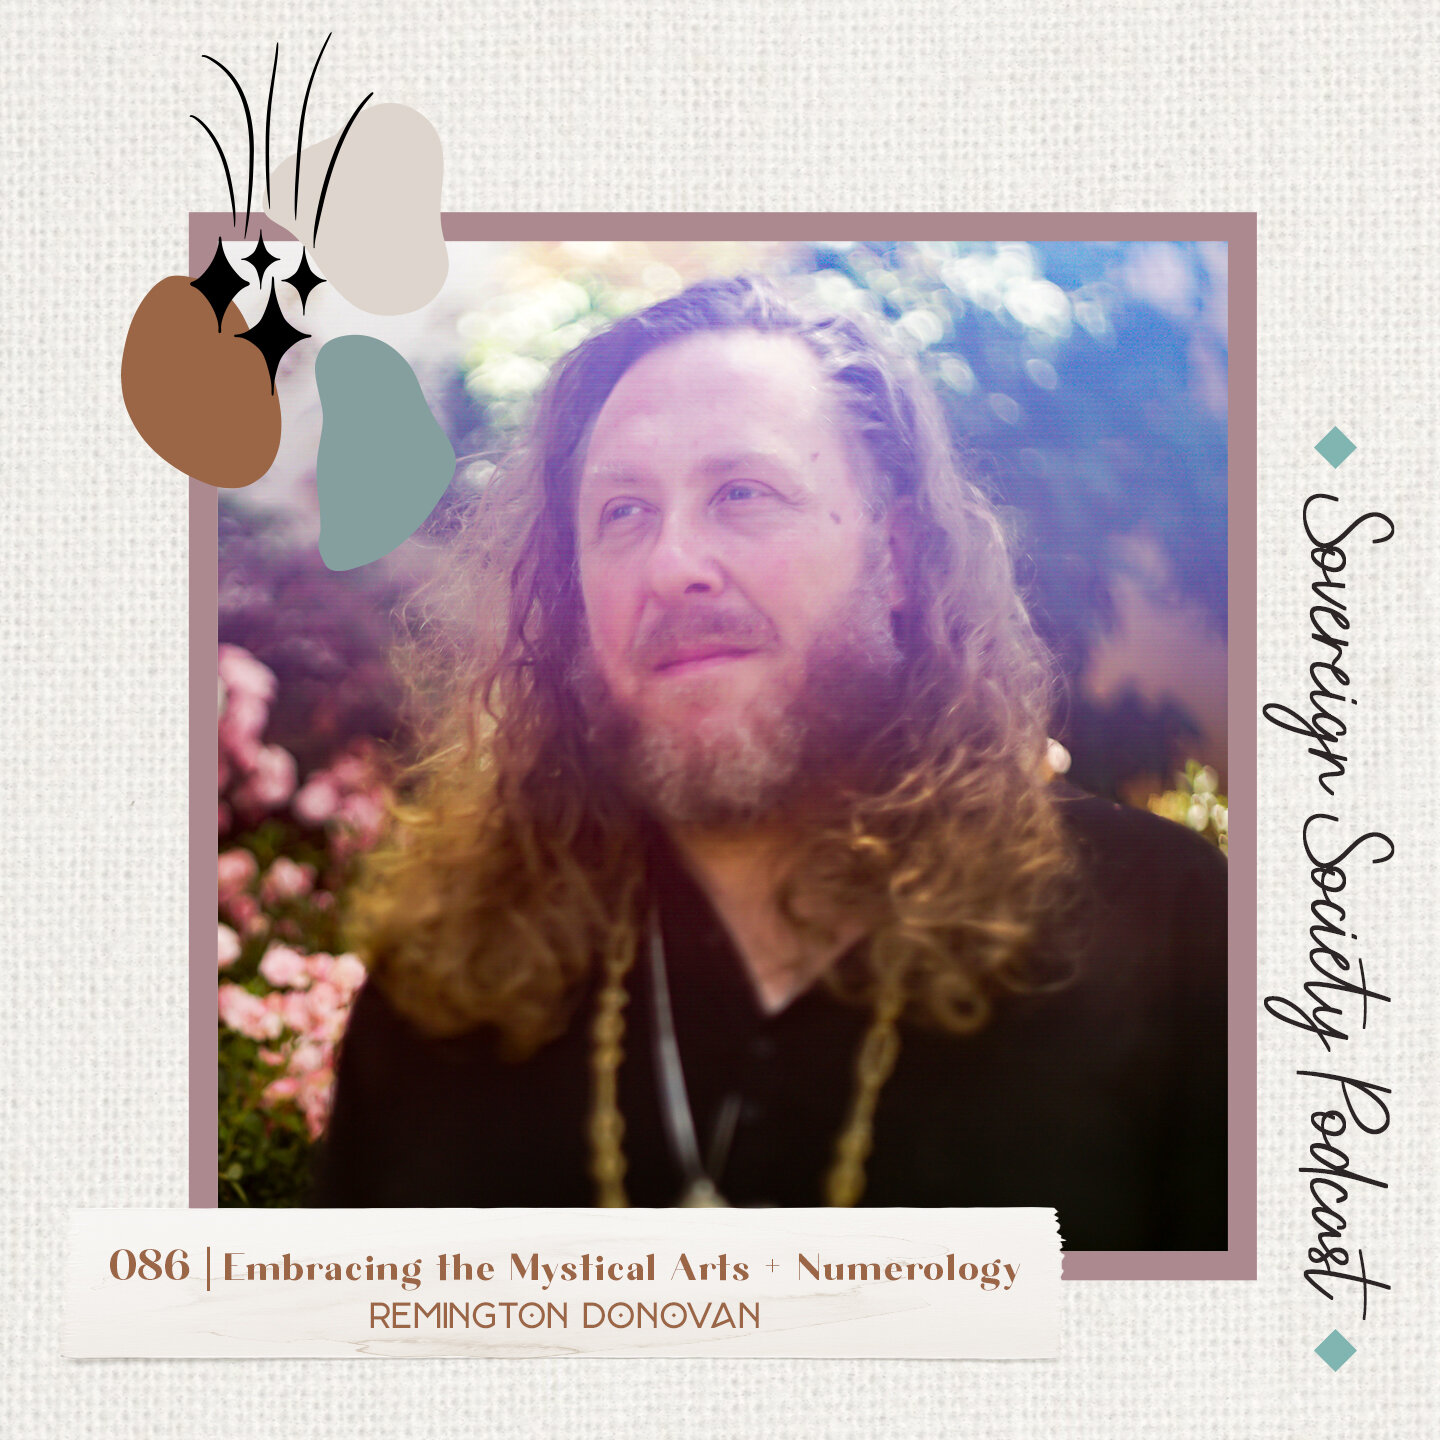 086 | Embracing the Mystical Arts + Numerology / Remington Donovan